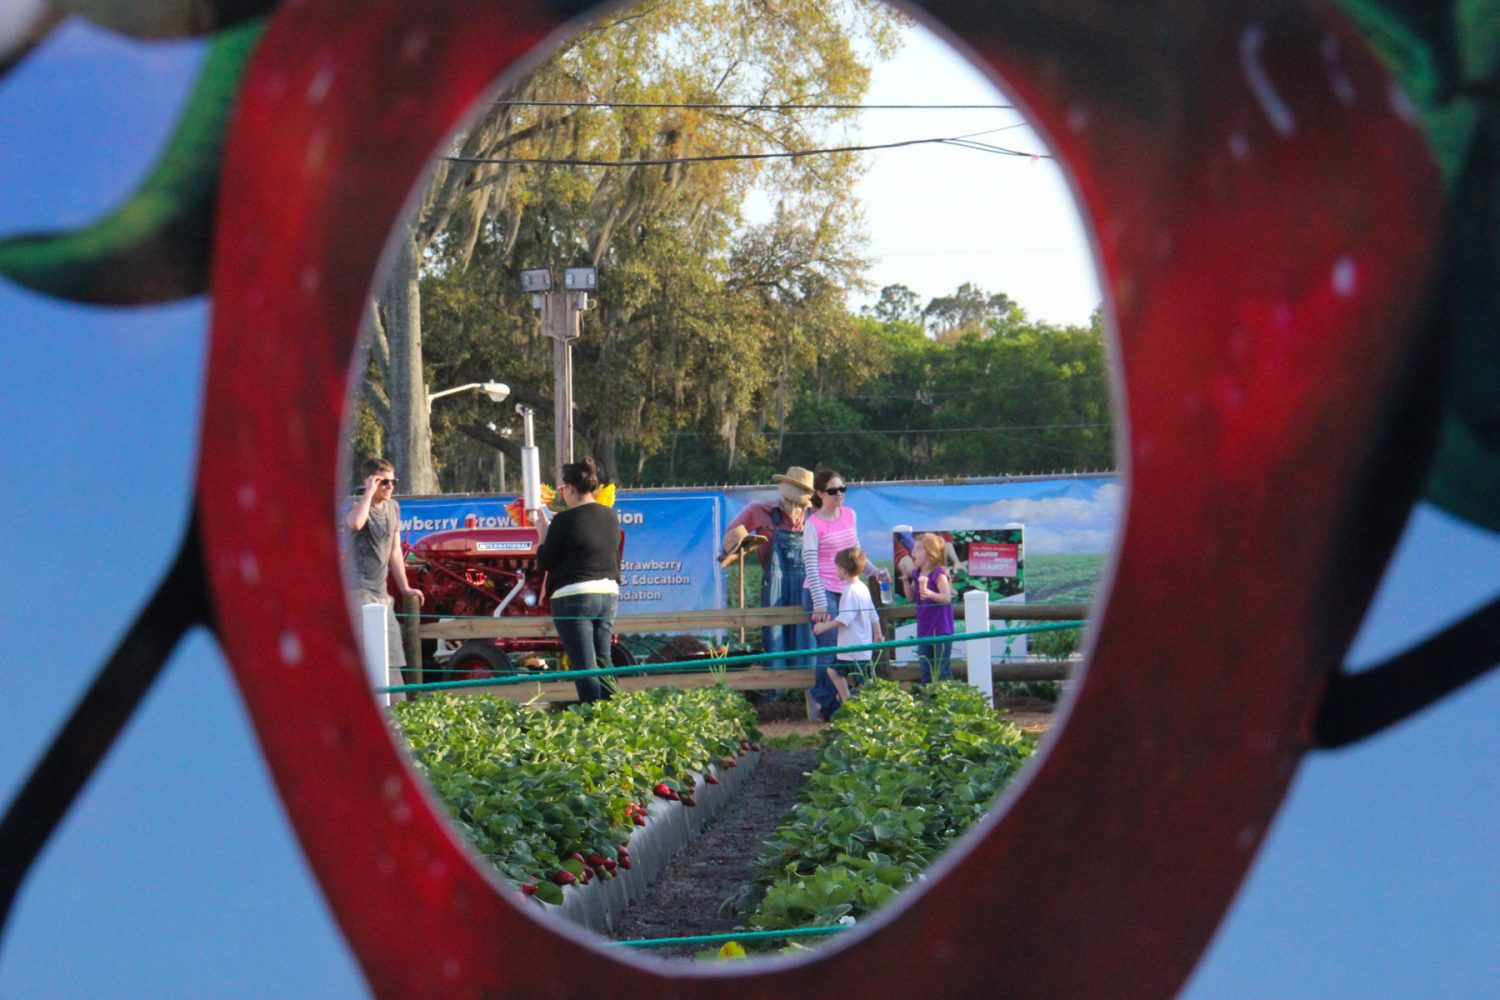 A family walks through a strawberry patch at the Florida Strawberry Festival on Sunday afternoon, Mar. 9, 2014.